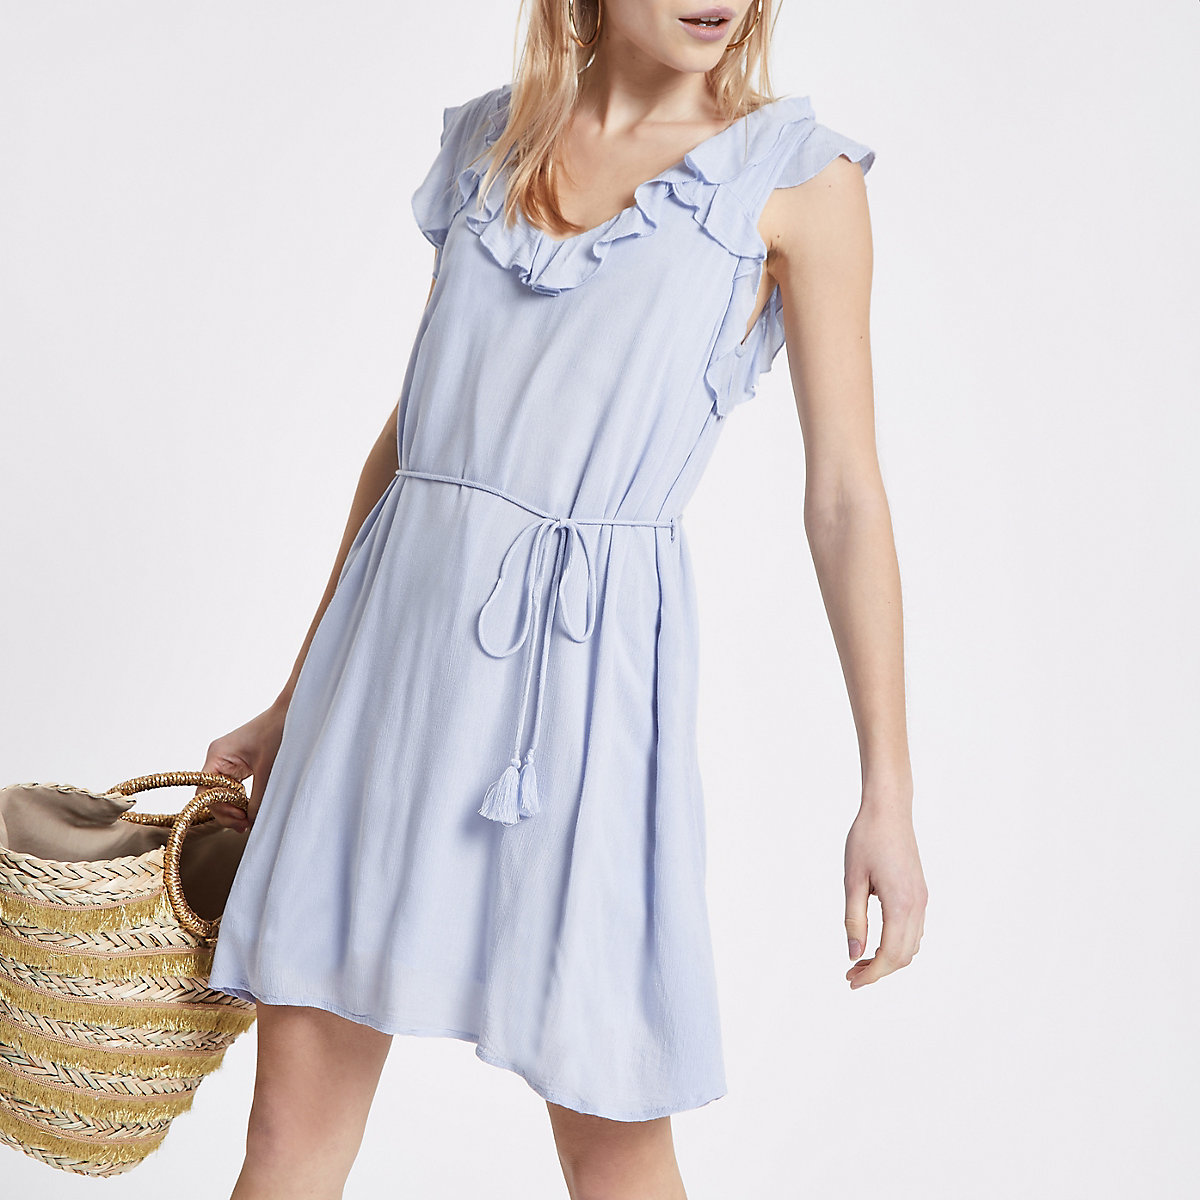 Petite Light blue lace-up frill swing dress